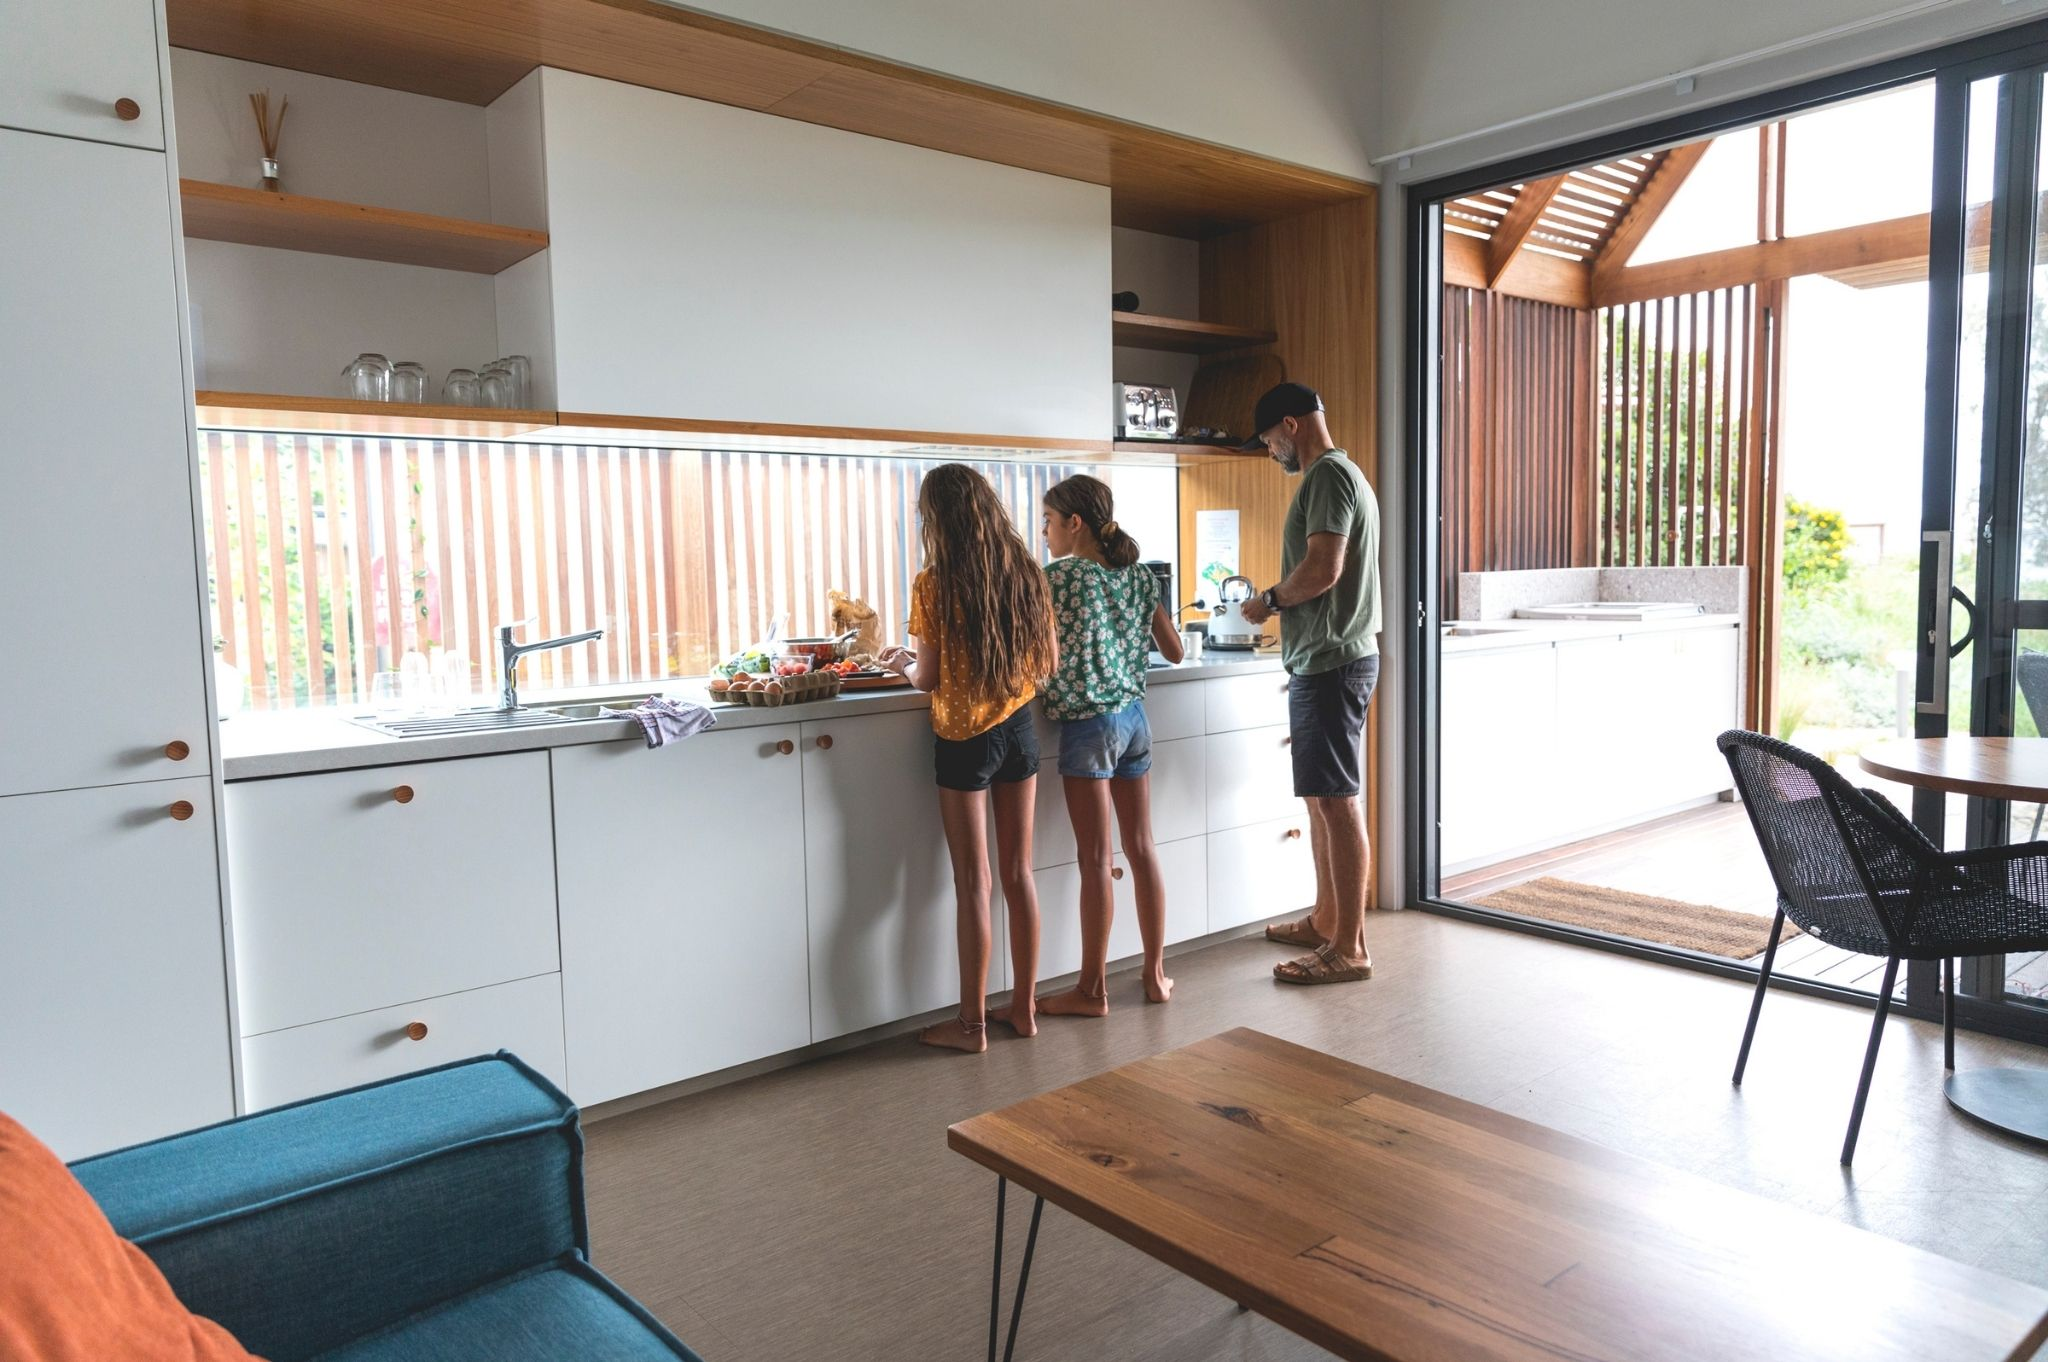 Image of a family cooking in their cabin kitchen at Reflections Holiday Parks Seal Rocks